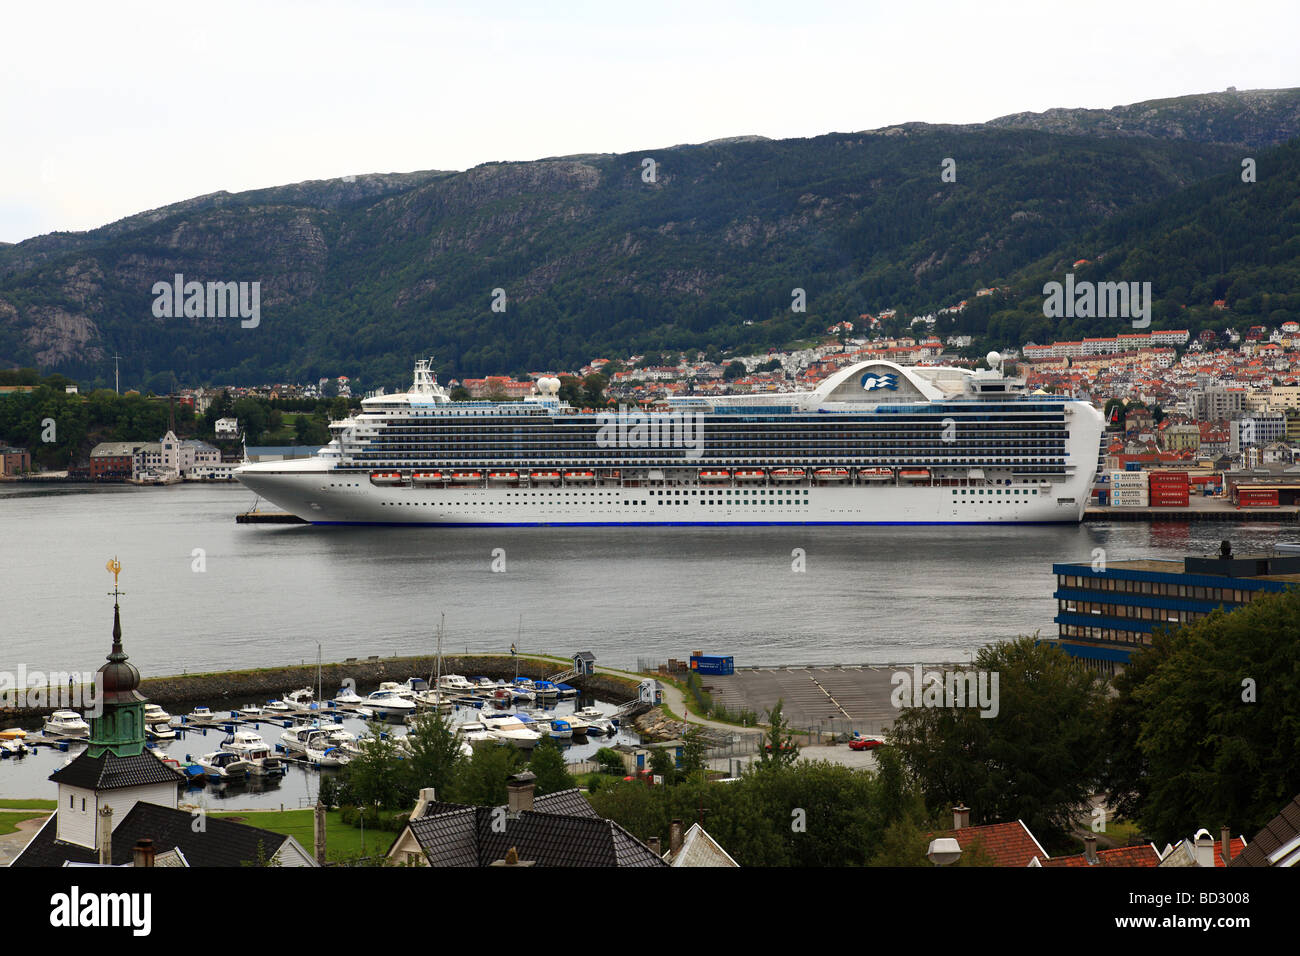 The Cruise Liner 'Crown Princess' visiting Bergen, Norway - Stock Image